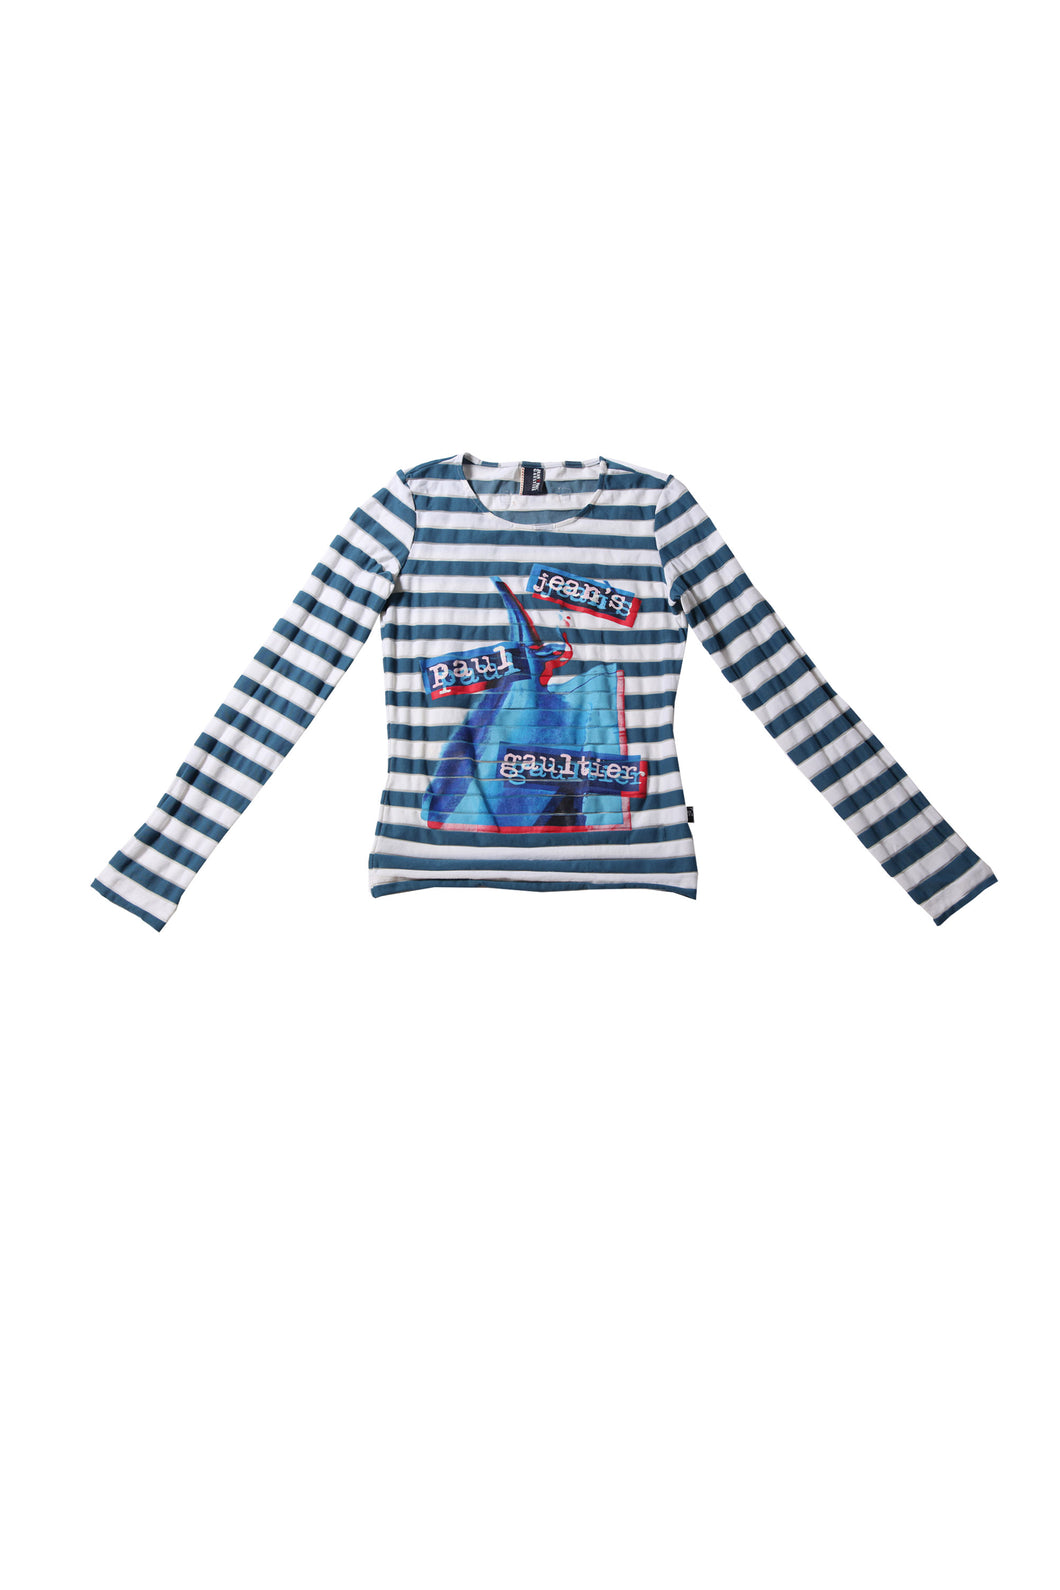 GAULTIER long sleeve striped tee